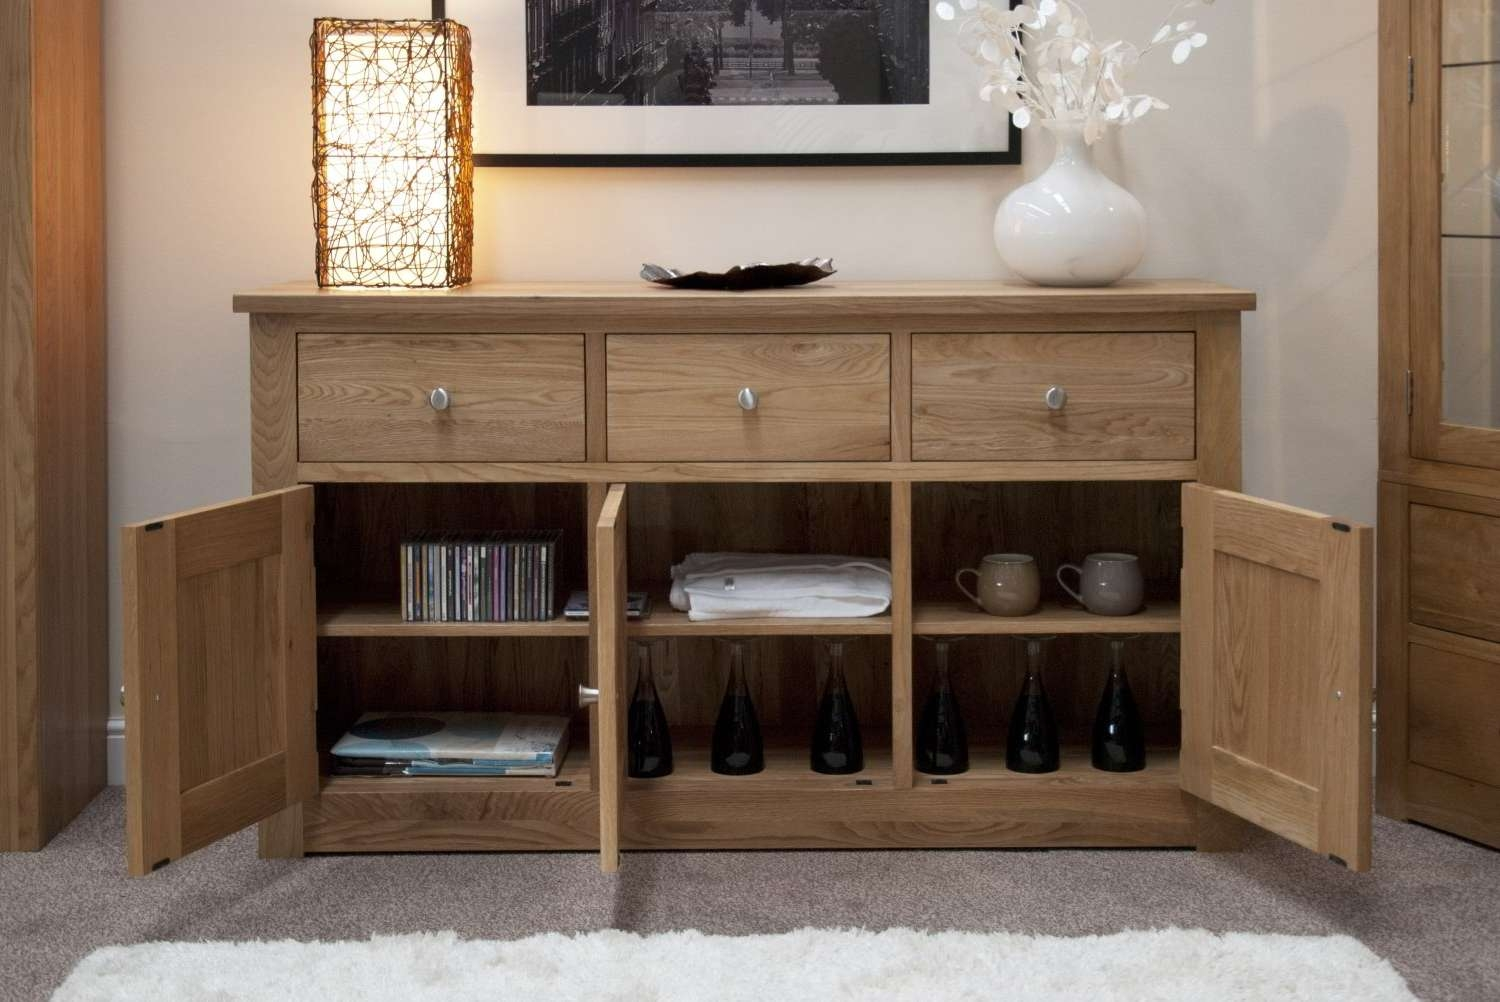 Kingston Solid Oak Living Dining Room Furniture Large Storage With Regard To Living Room Sideboards (View 6 of 20)